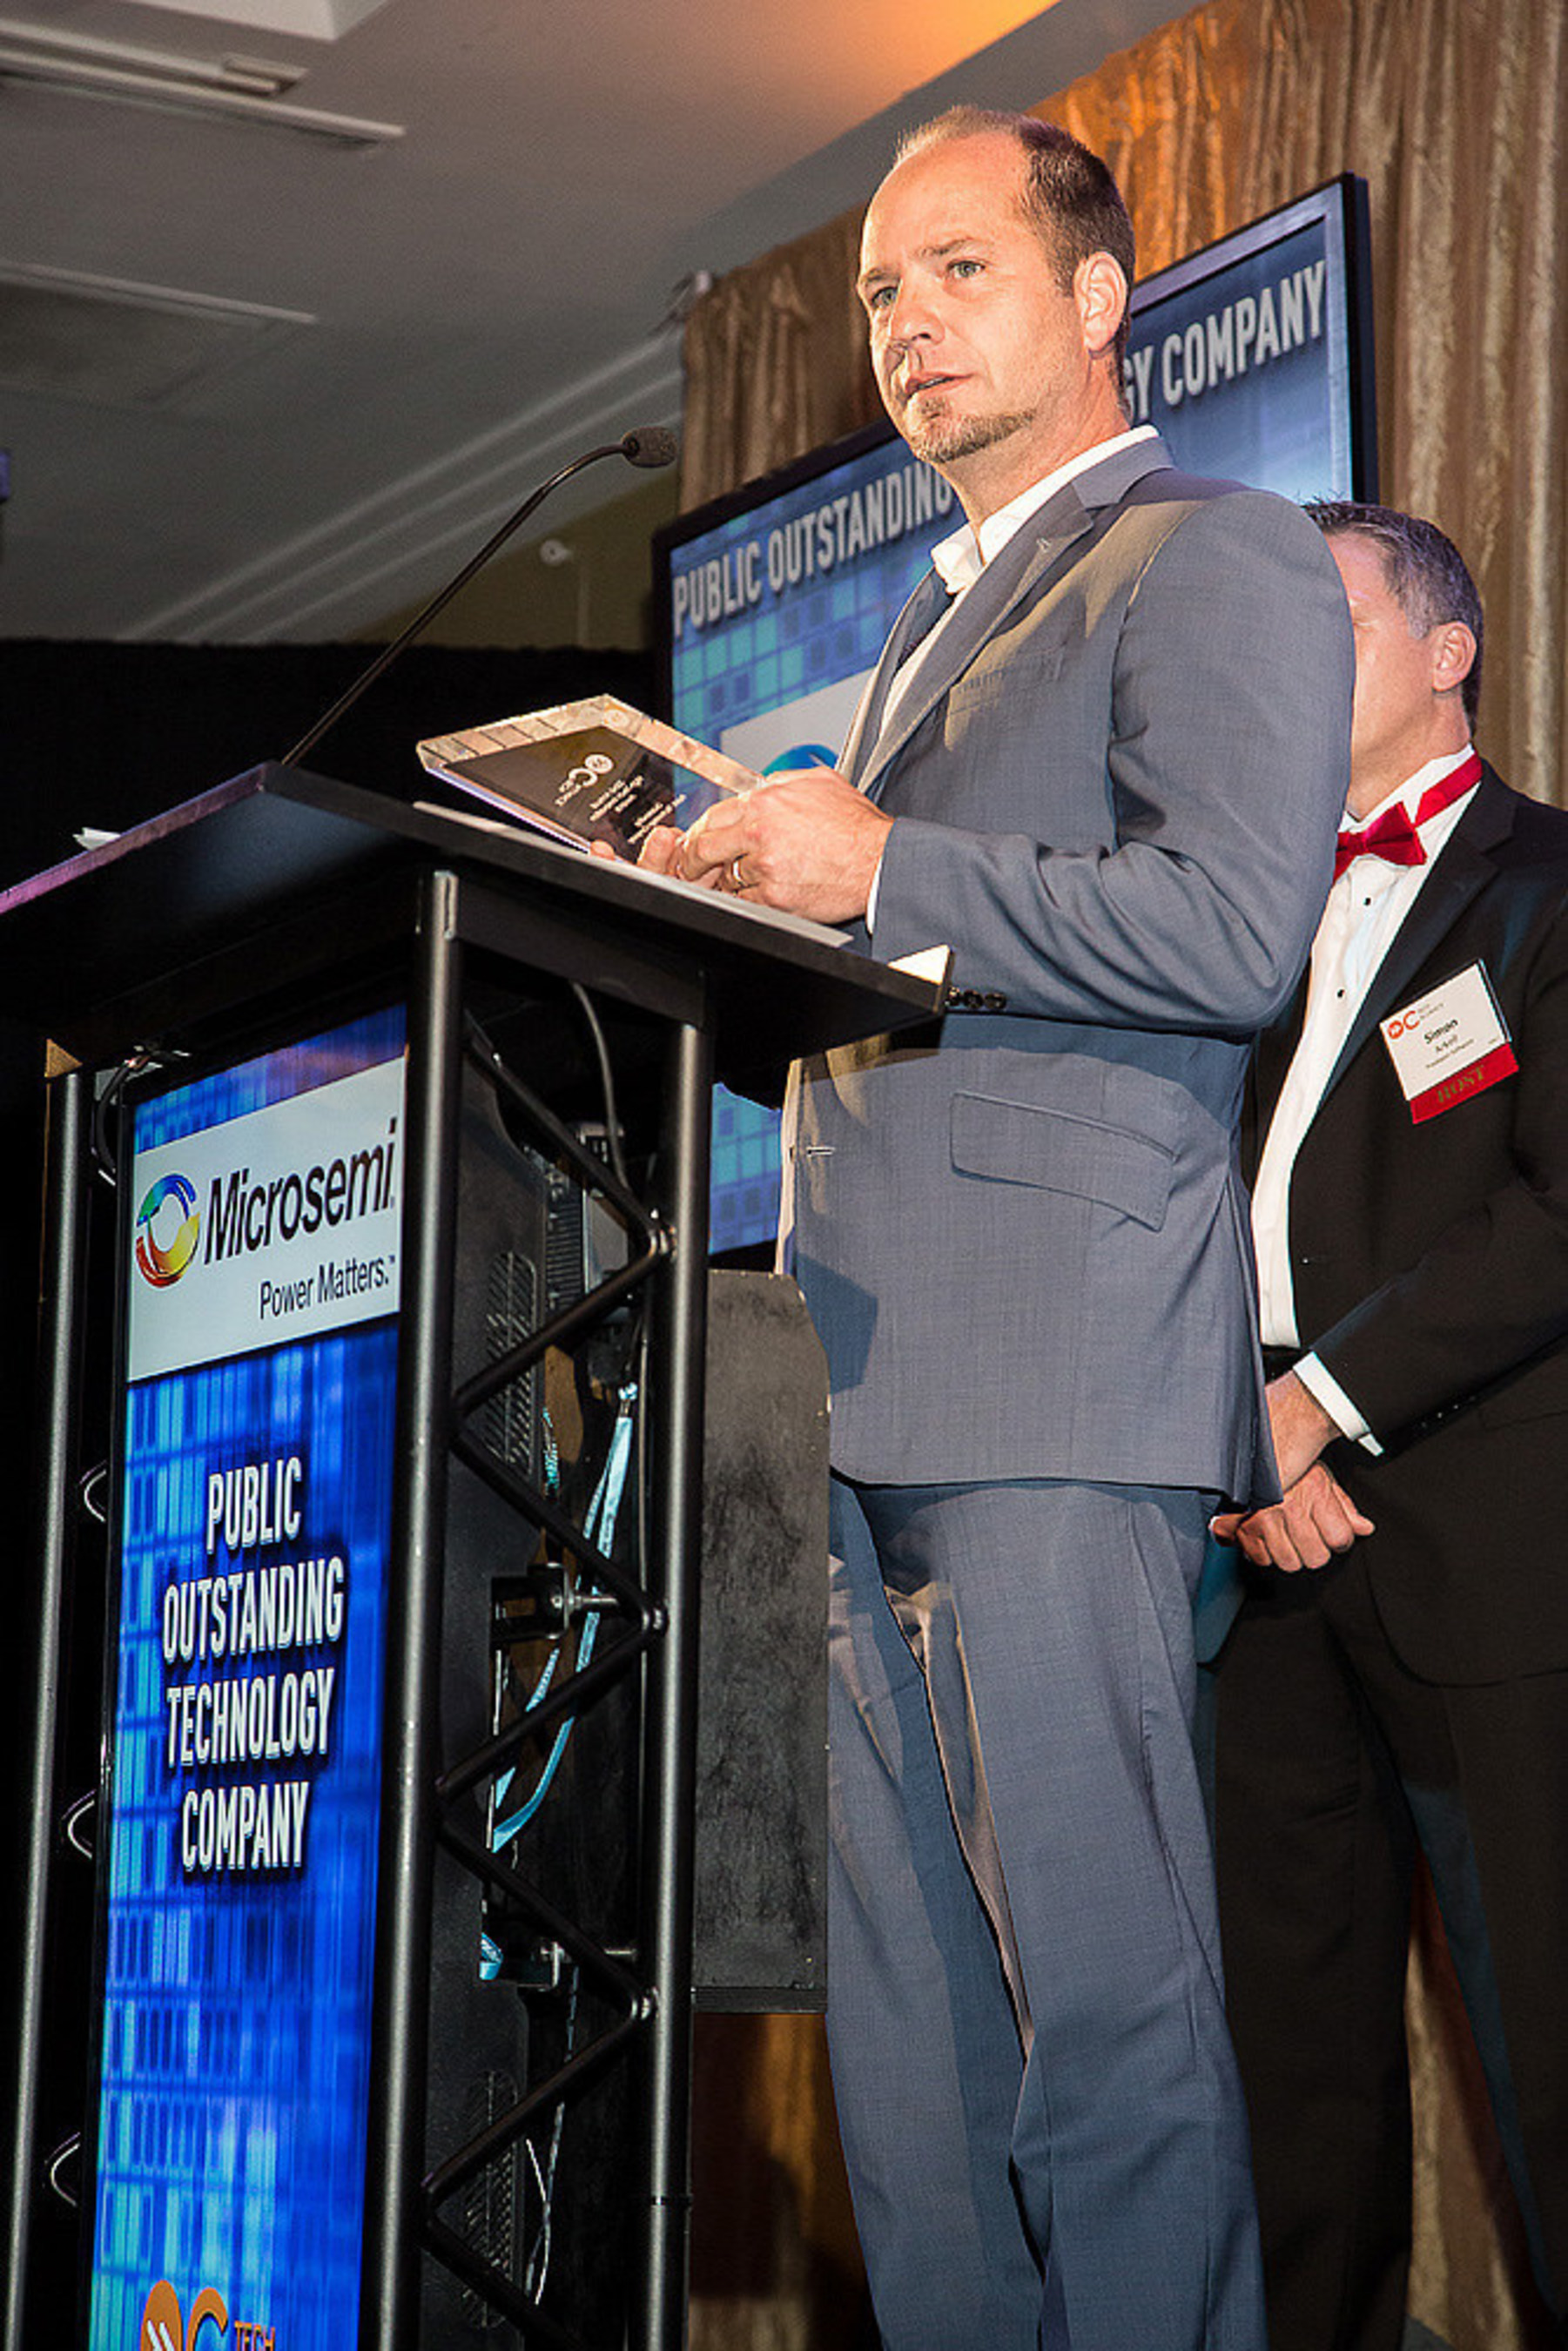 """Microsemi's President and COO Paul Pickle accepts the company's 2015 """"Outstanding Public Technology Company"""" award from the Orange County Tech Alliance. Microsemi was also the recipient of its """"Enterprise Hardware & Device"""" award. OC Tech Alliance's 22nd Annual High-Tech Innovation Awards celebrate excellence and achievement in the region's technology industry, honoring local companies, individuals and products that drive innovation in Orange County, California."""